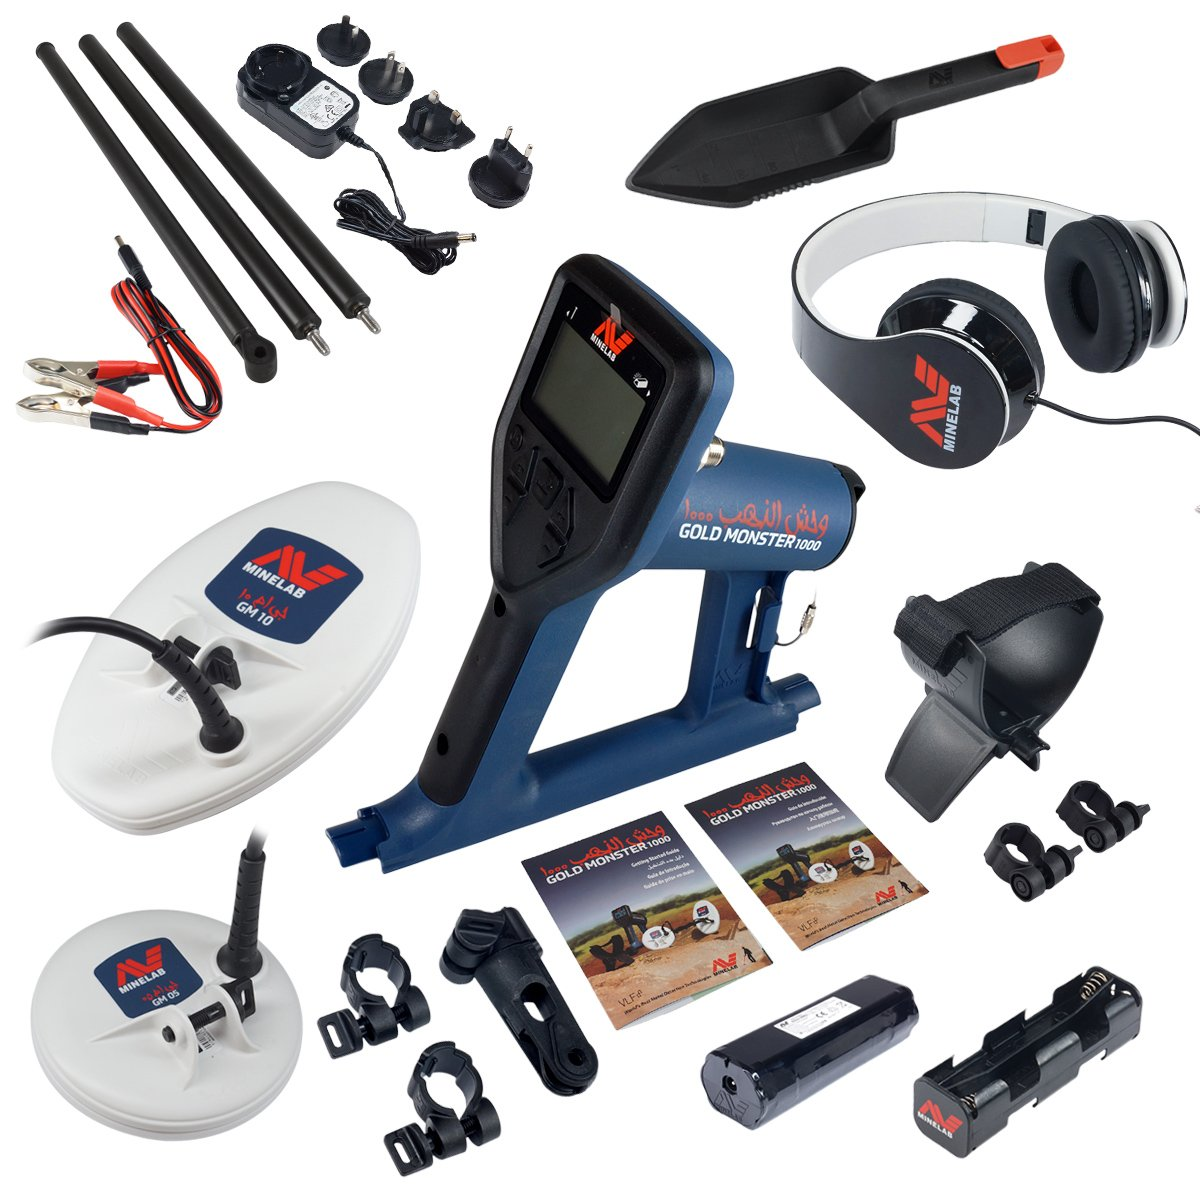 Amazon.com : Minelab Gold Monster 1000 Detector Bundle w/PRO Gold Gold Panning Kit : Garden & Outdoor